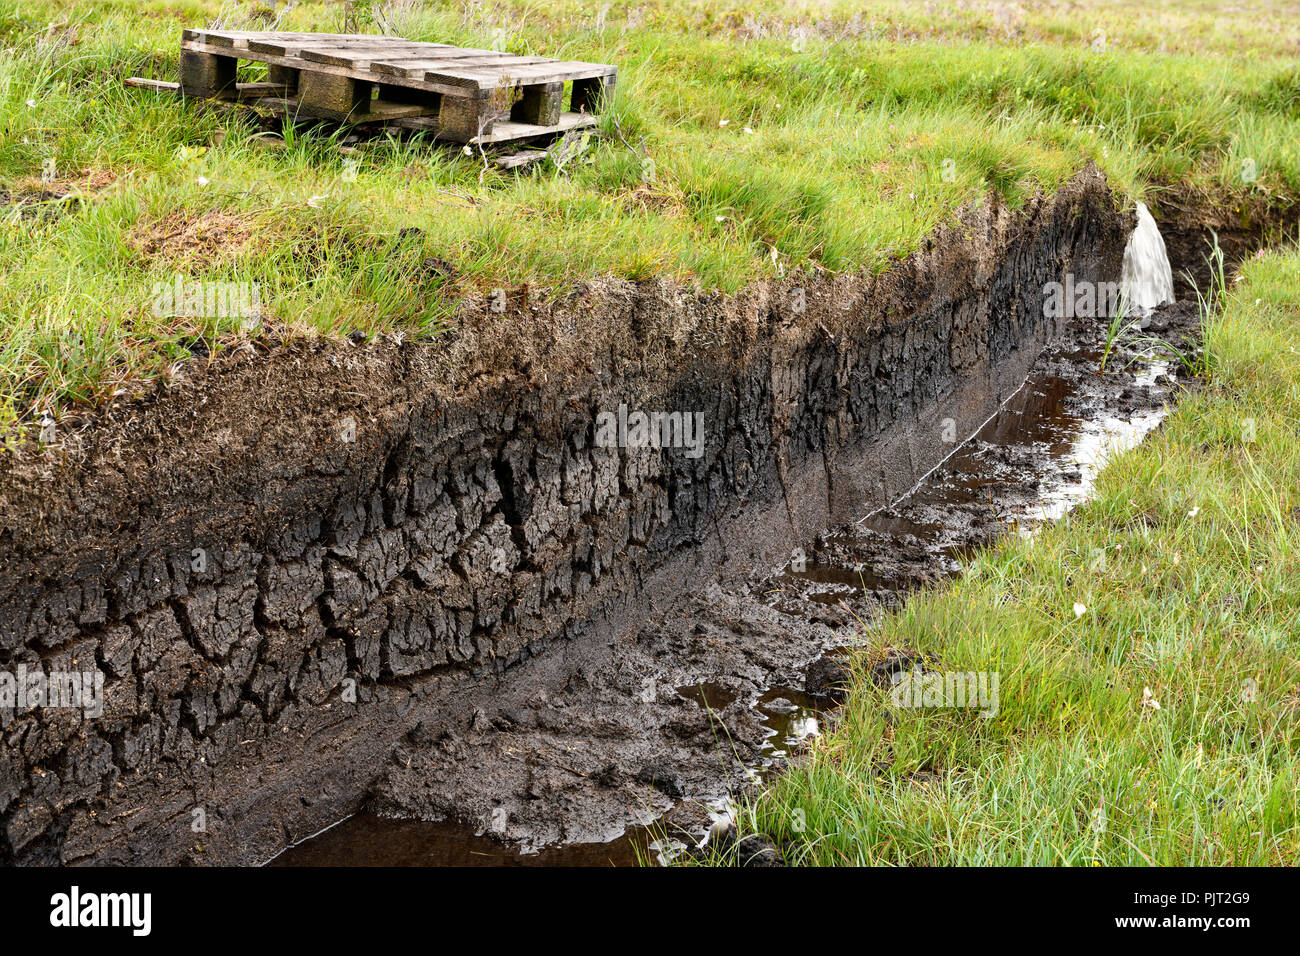 Trench cut into deep Peat of wetland moors on Isle of Skye Scotland to drain water for harvest - Stock Image